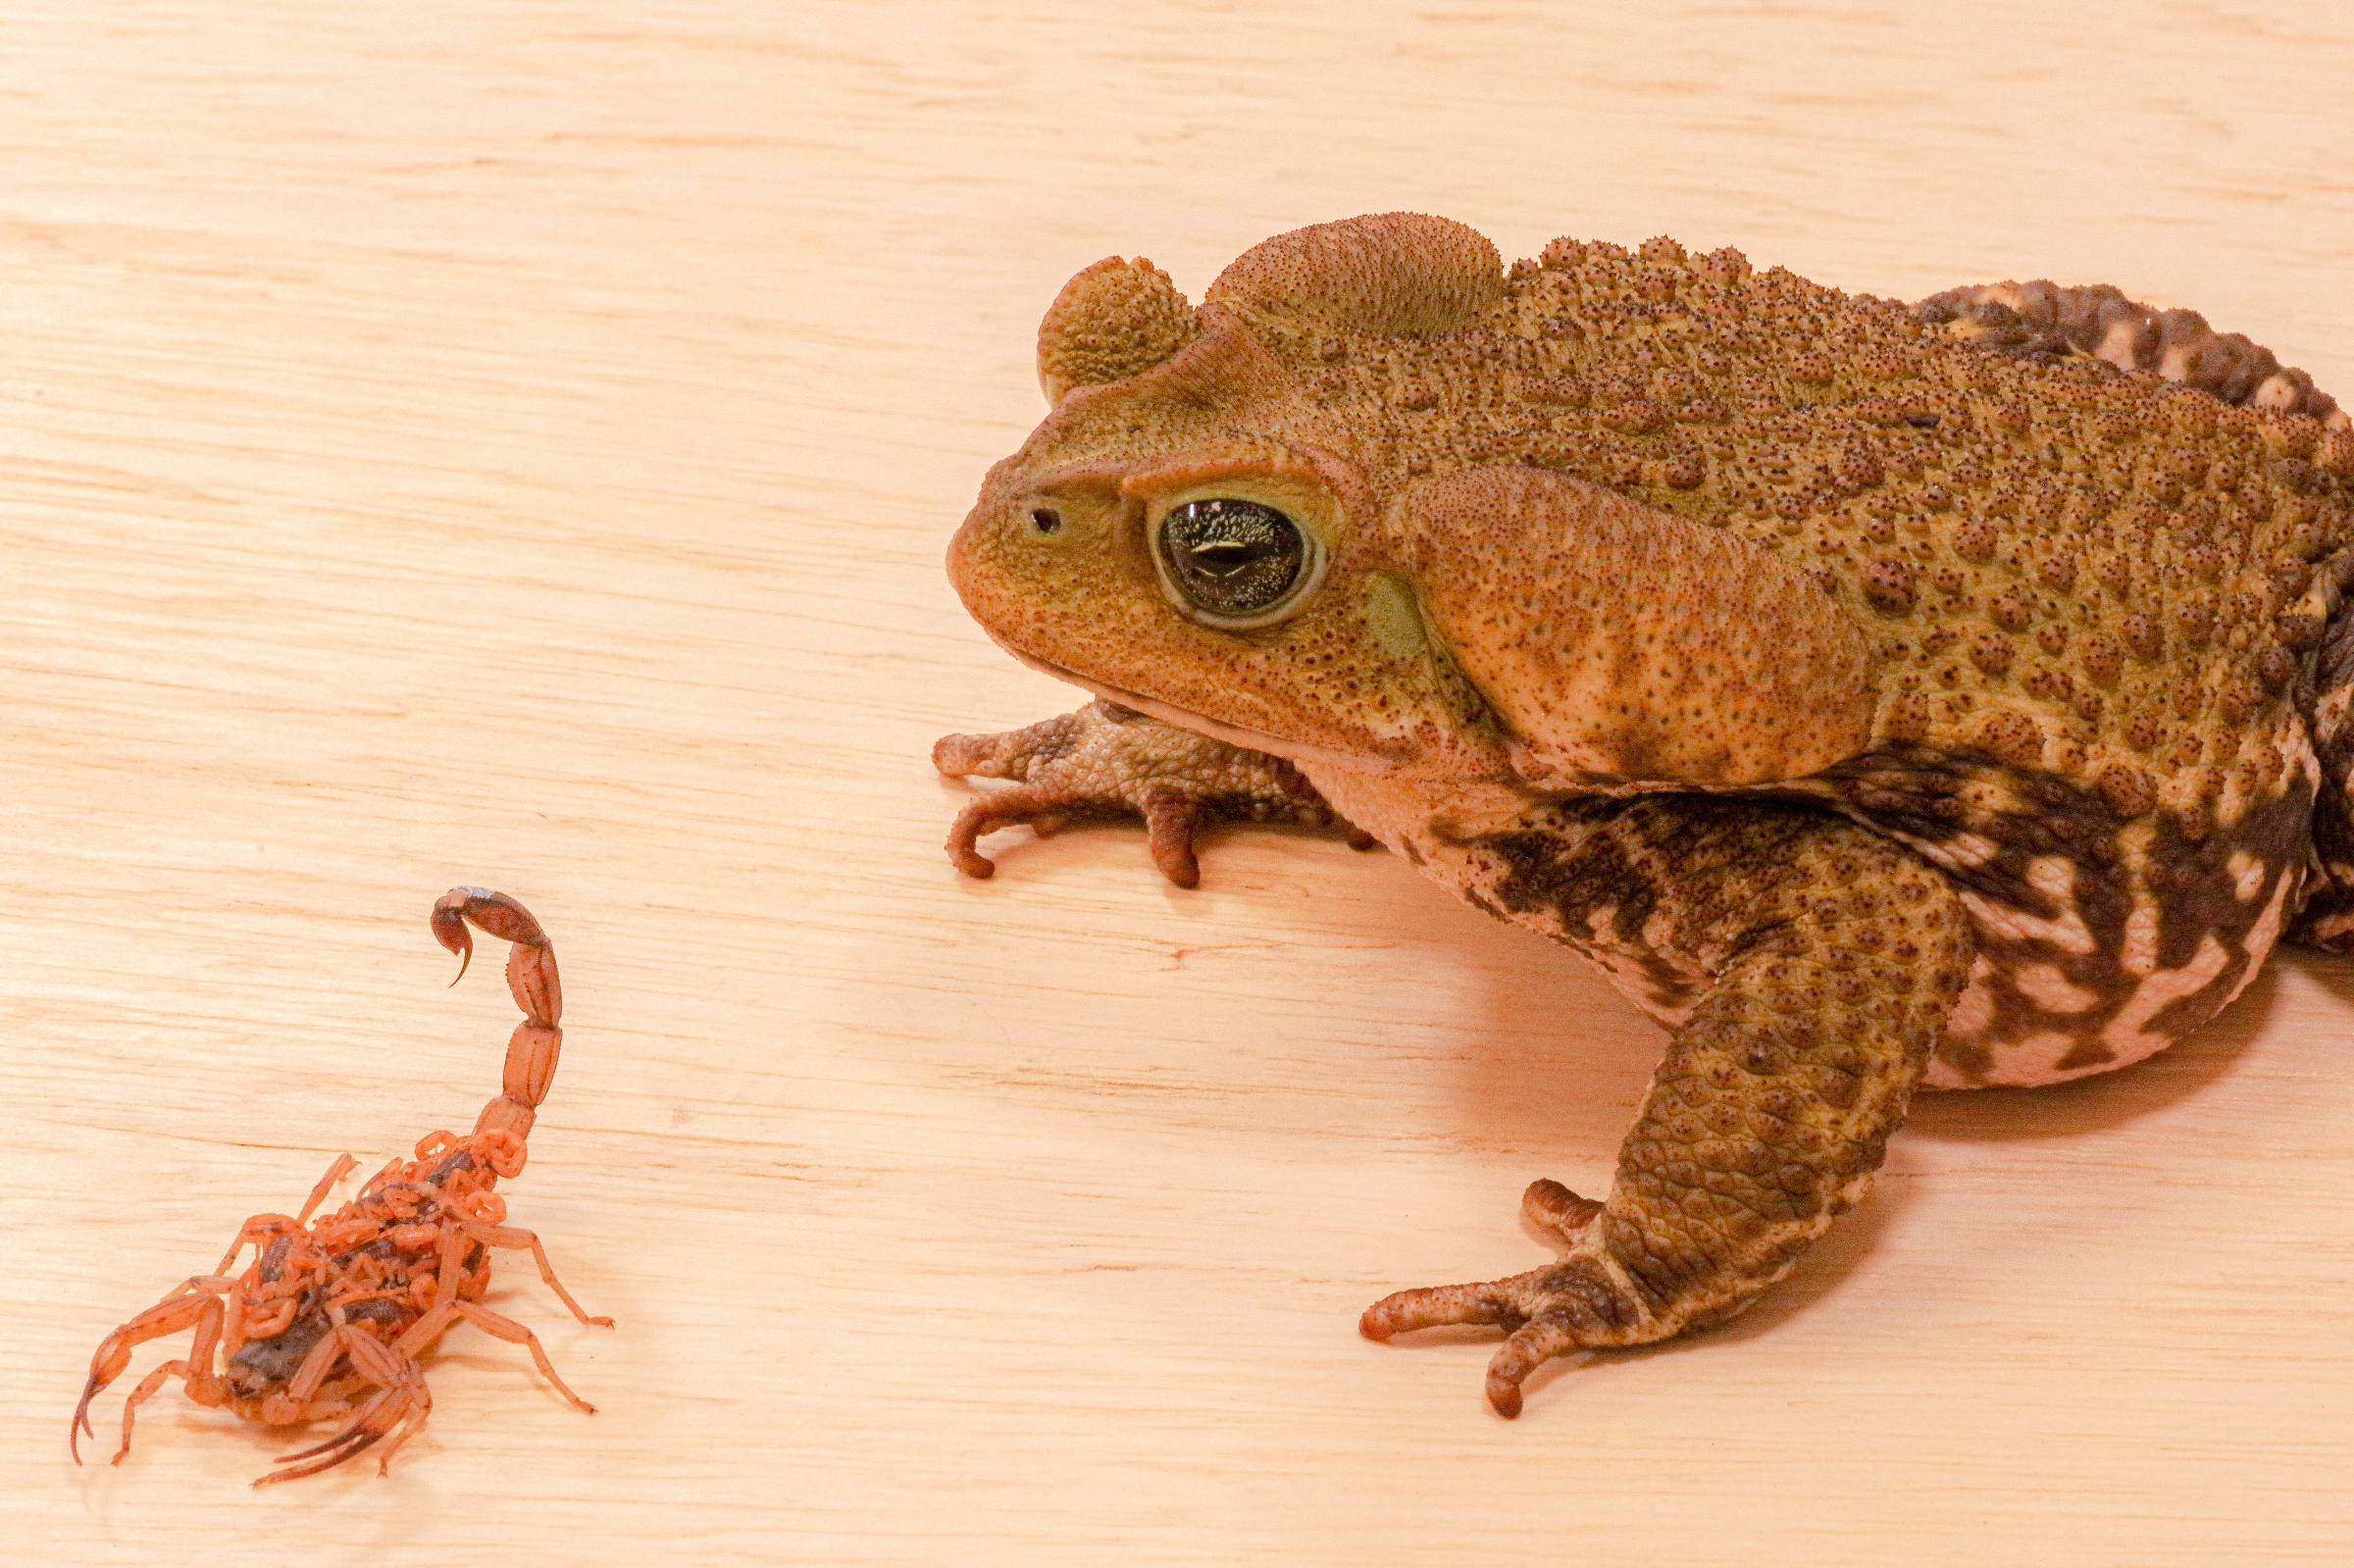 Cane toad can help fight yellow scorpion